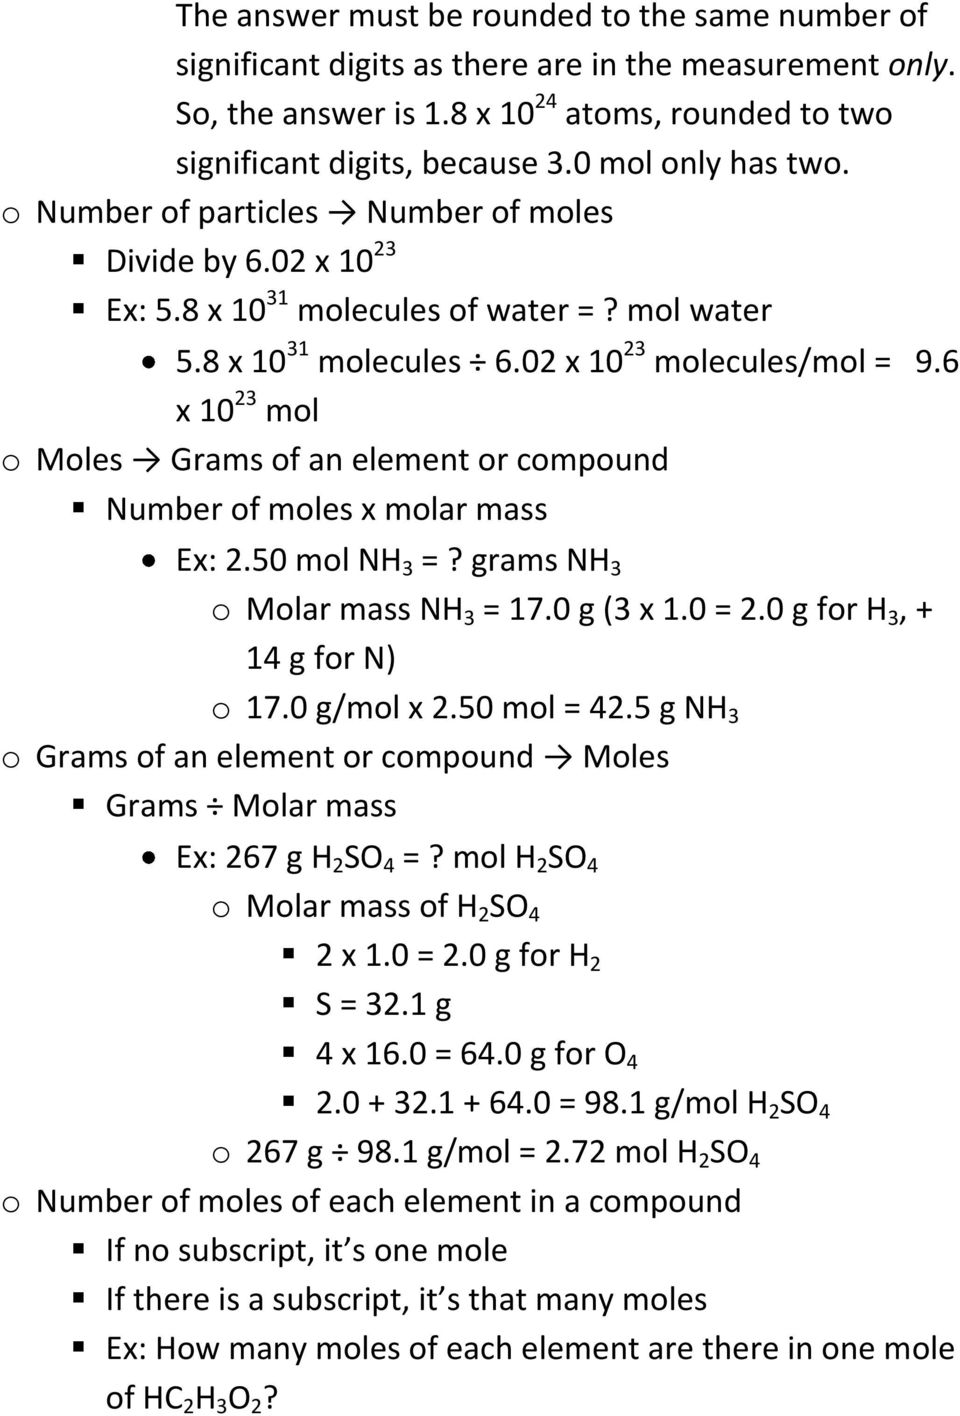 6 x 10 23 mol o Moles Grams of an element or compound Number of moles x molar mass Ex: 2.50 mol NH 3 =? grams NH 3 o Molar mass NH 3 = 17.0 g (3 x 1.0 = 2.0 g for H 3, + 14 g for N) o 17.0 g/mol x 2.